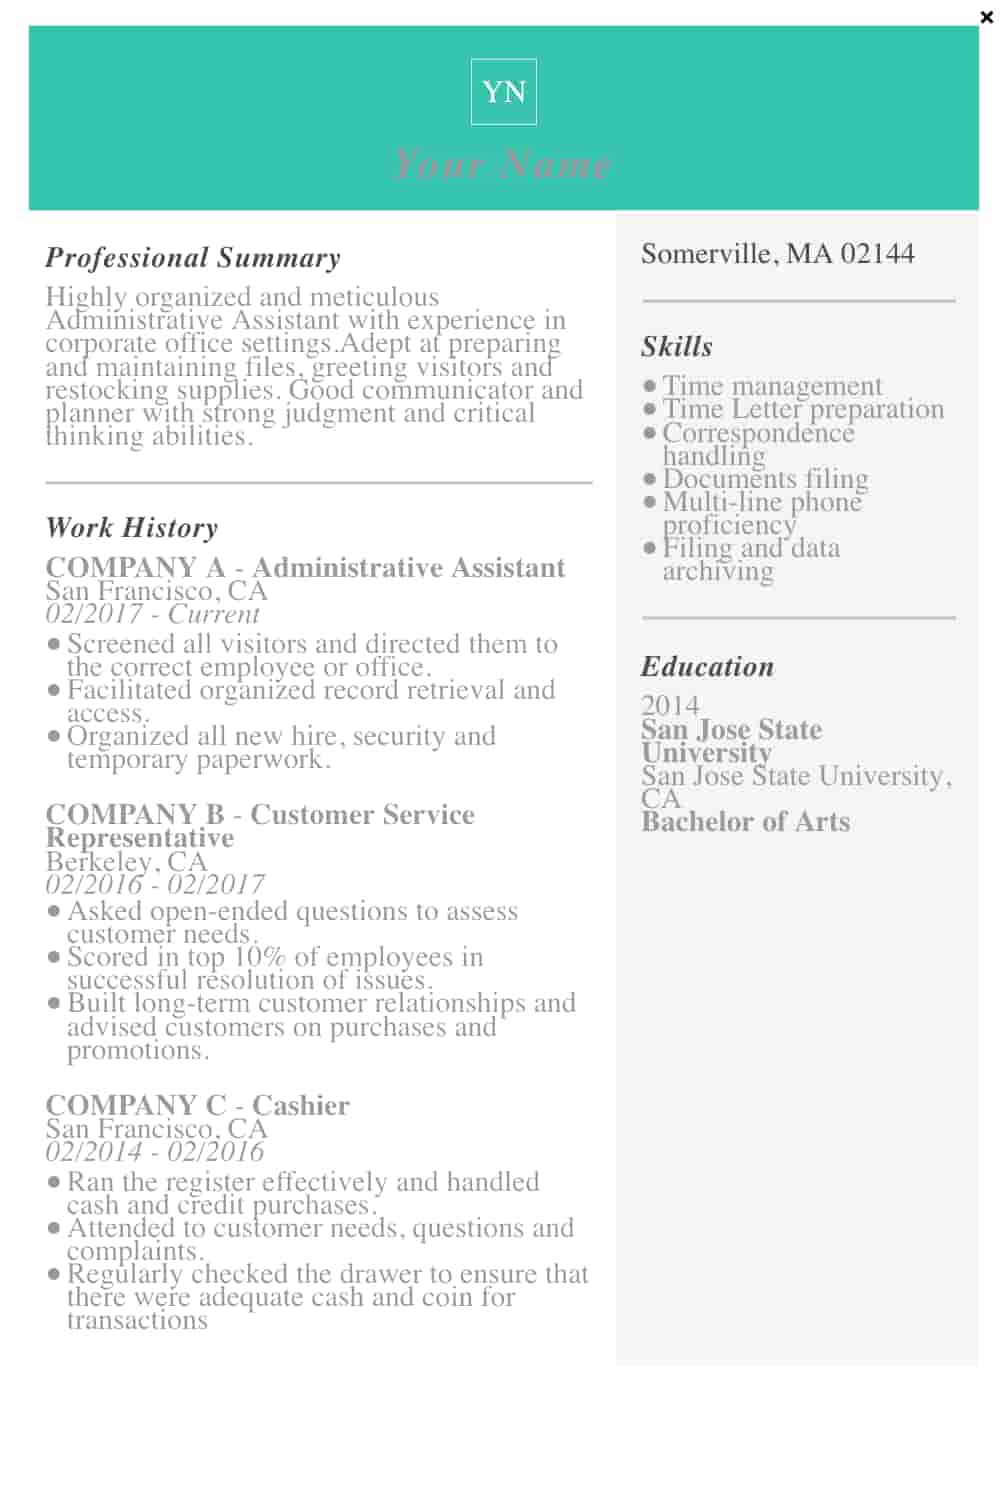 free resume templates for microsoft word to make your own best business template screen Resume Best Business Resume Template 2017